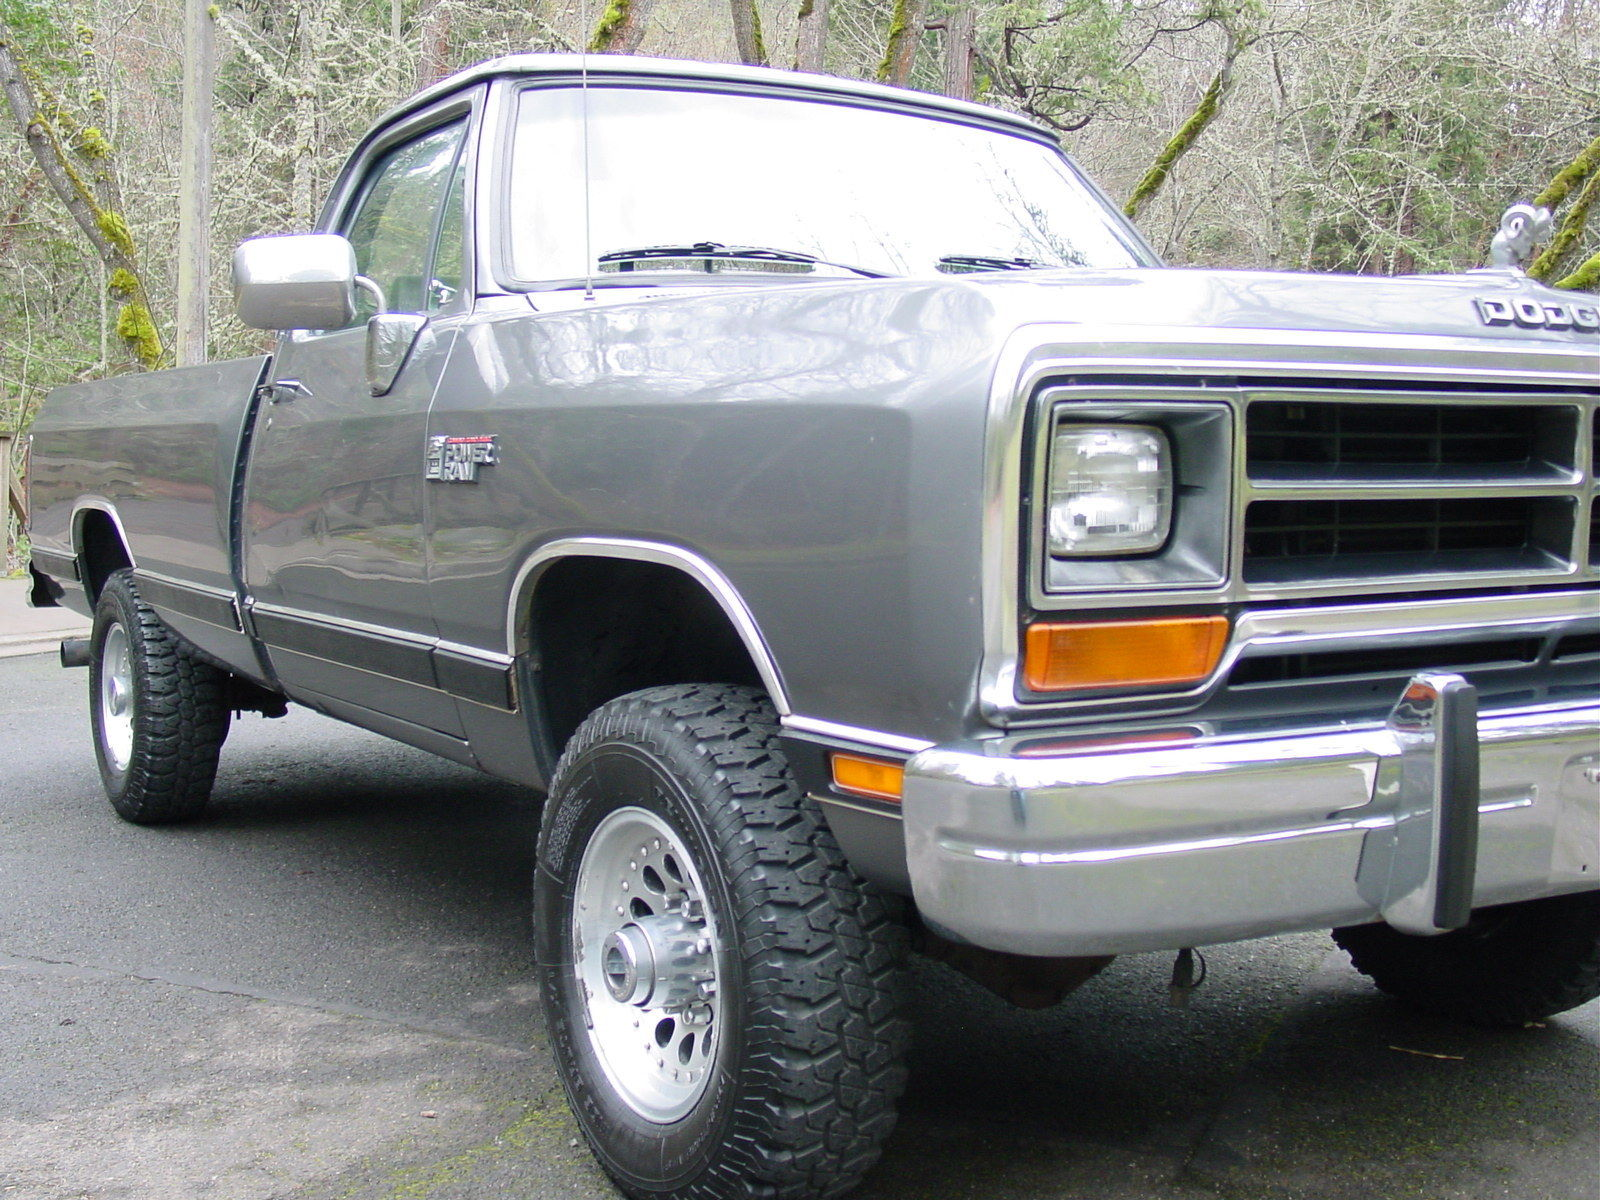 first generation 12 valve cummins turbo diesel 4wd pickup all stock original classic dodge. Black Bedroom Furniture Sets. Home Design Ideas